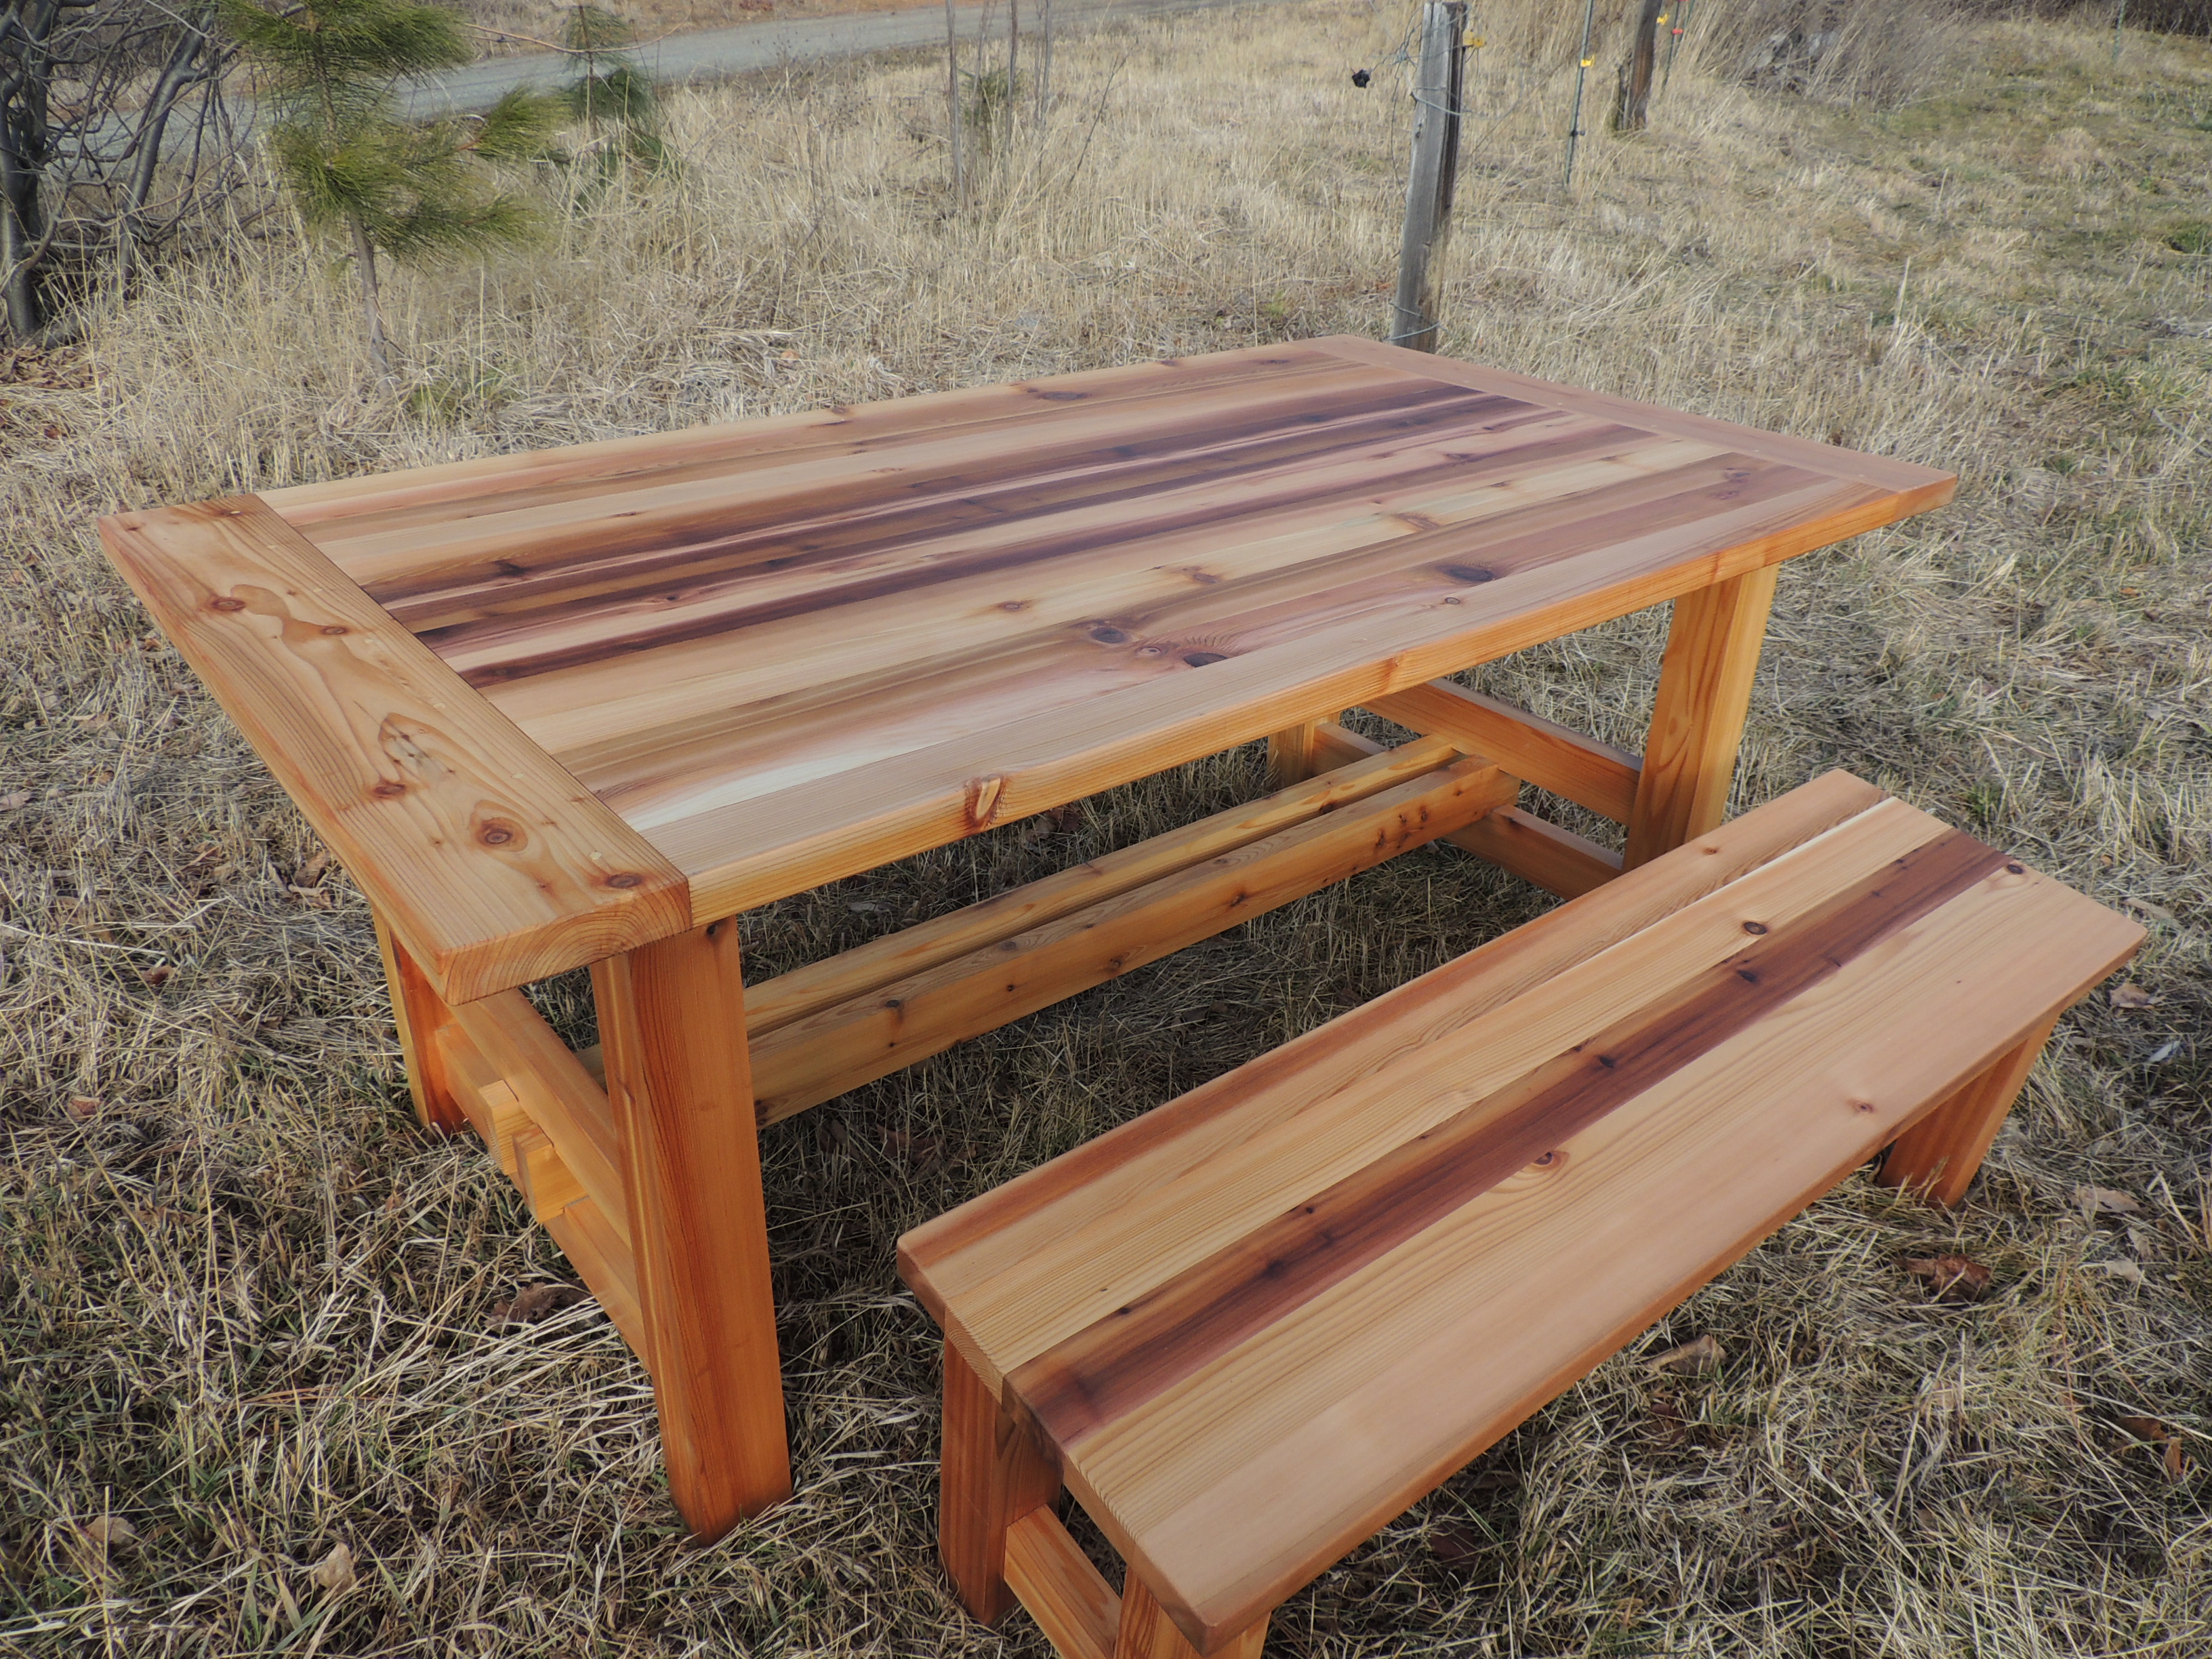 The Bear Necessities Picnic Table, And Benches